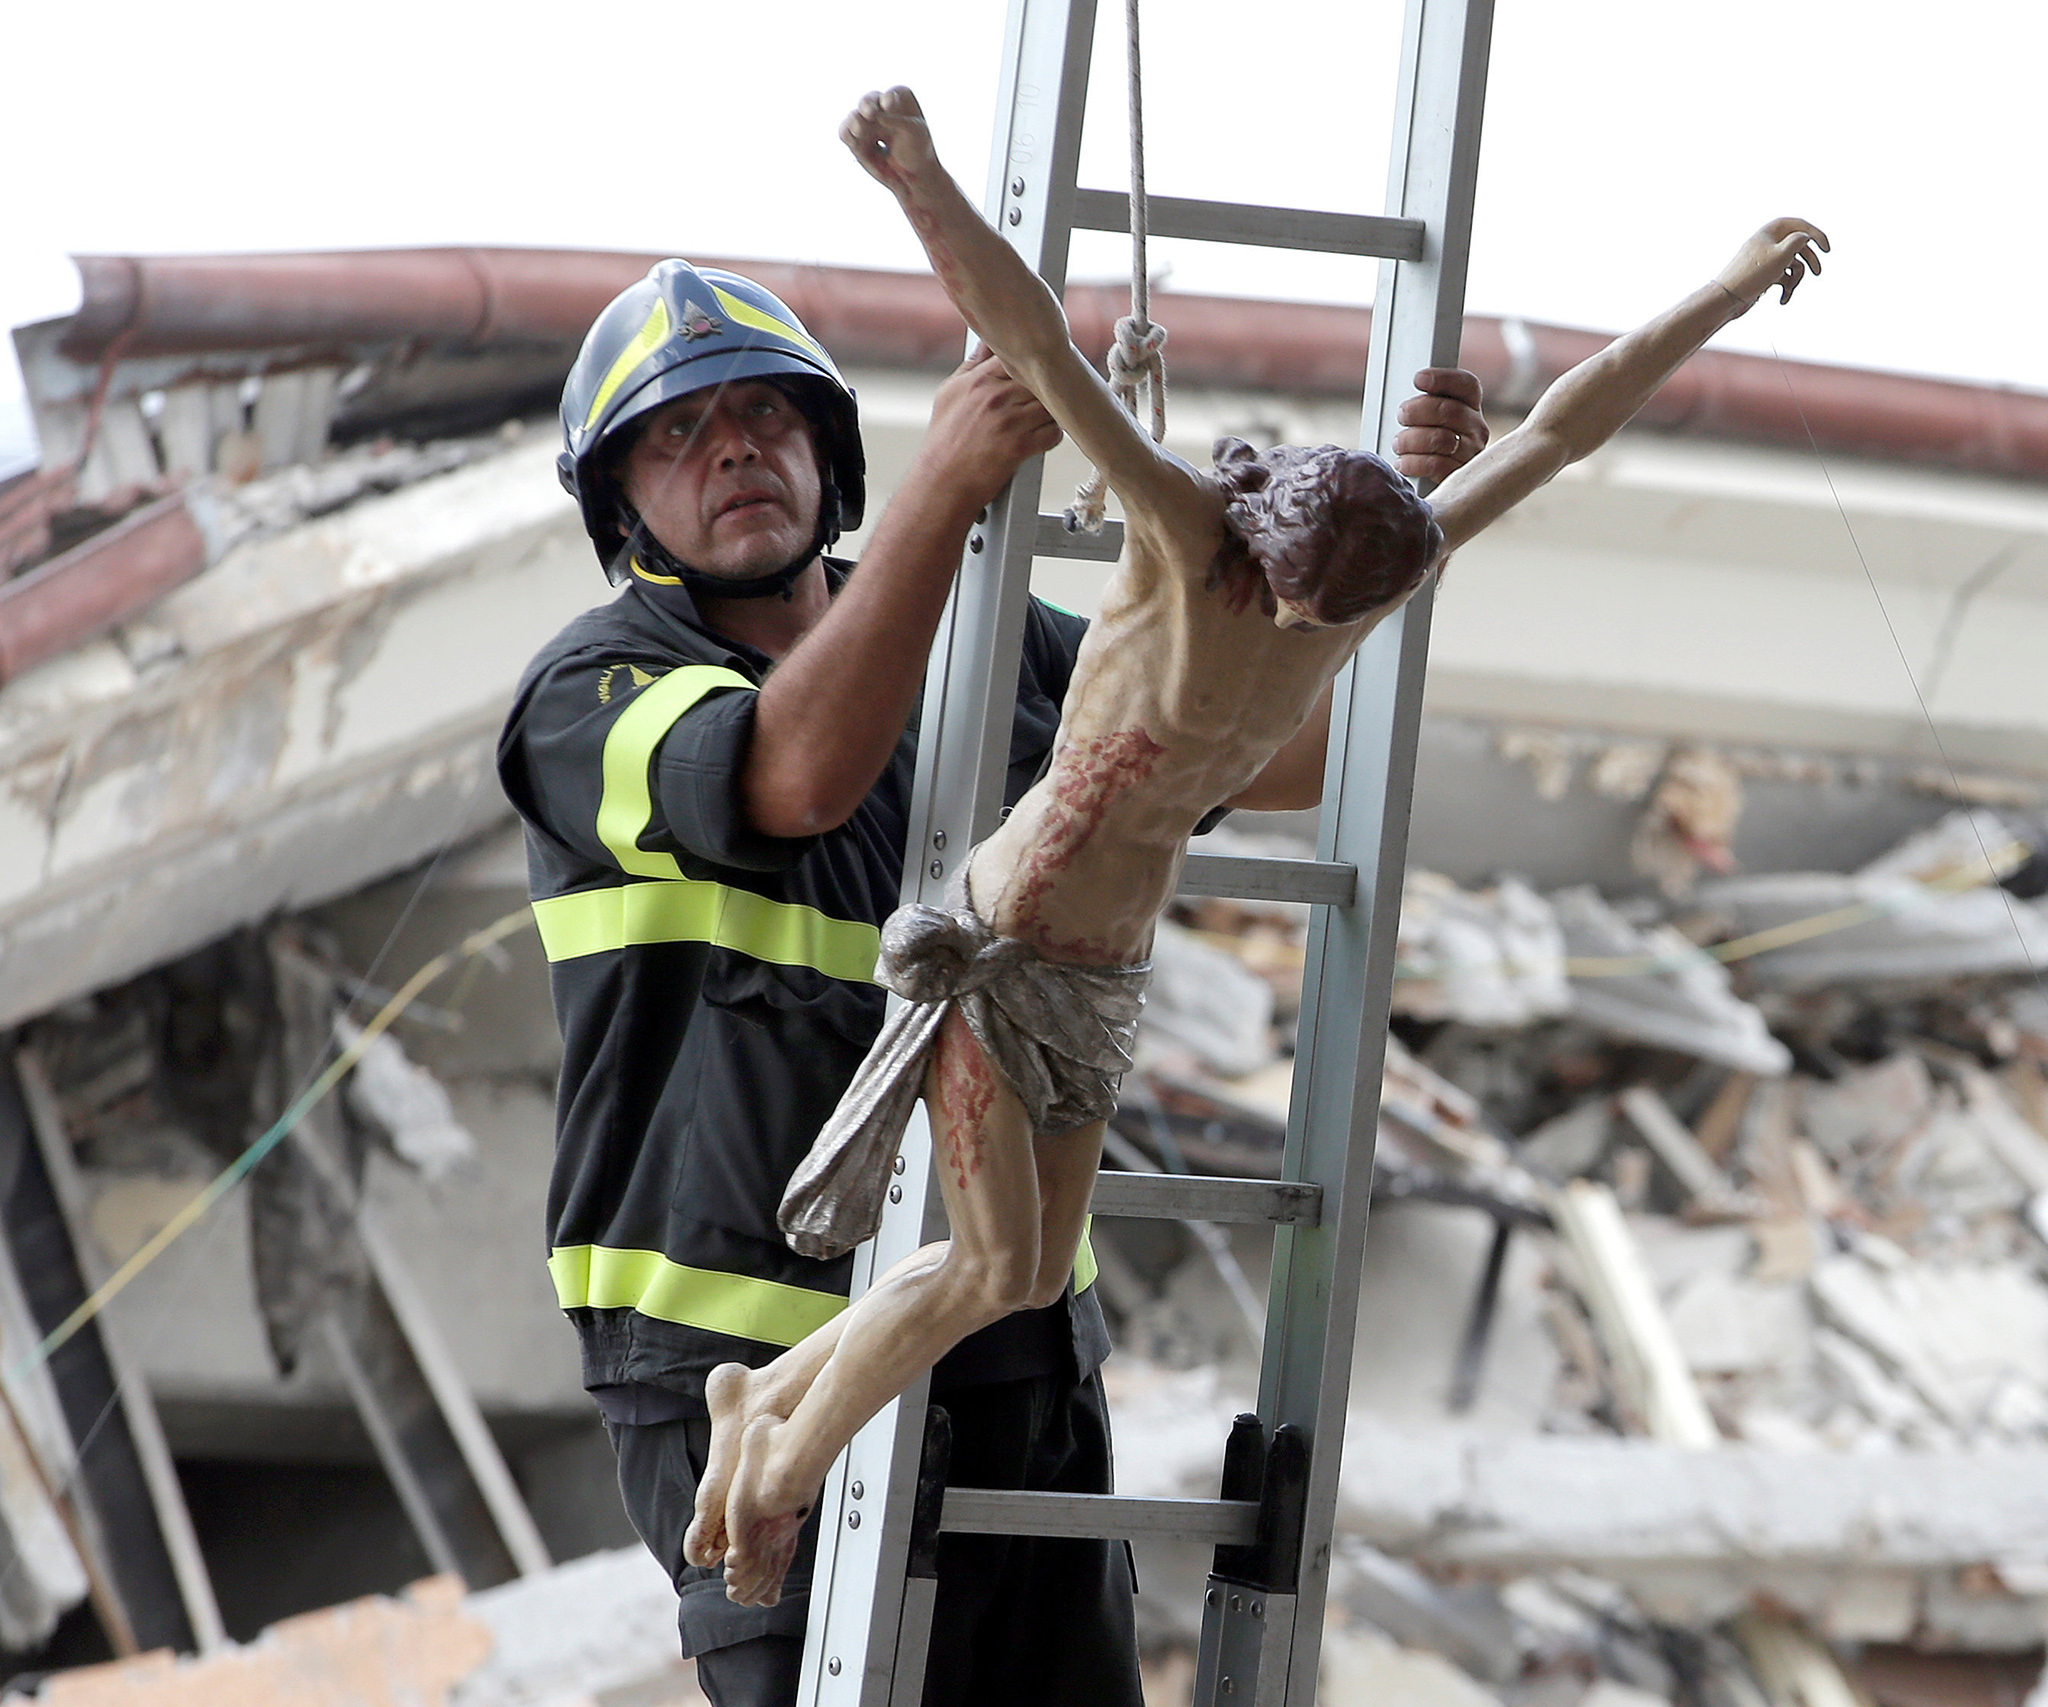 A firefighter holds a statue of Jesus rescued in the town of Amatrice following the earthquake that levelled the town in central Italy.